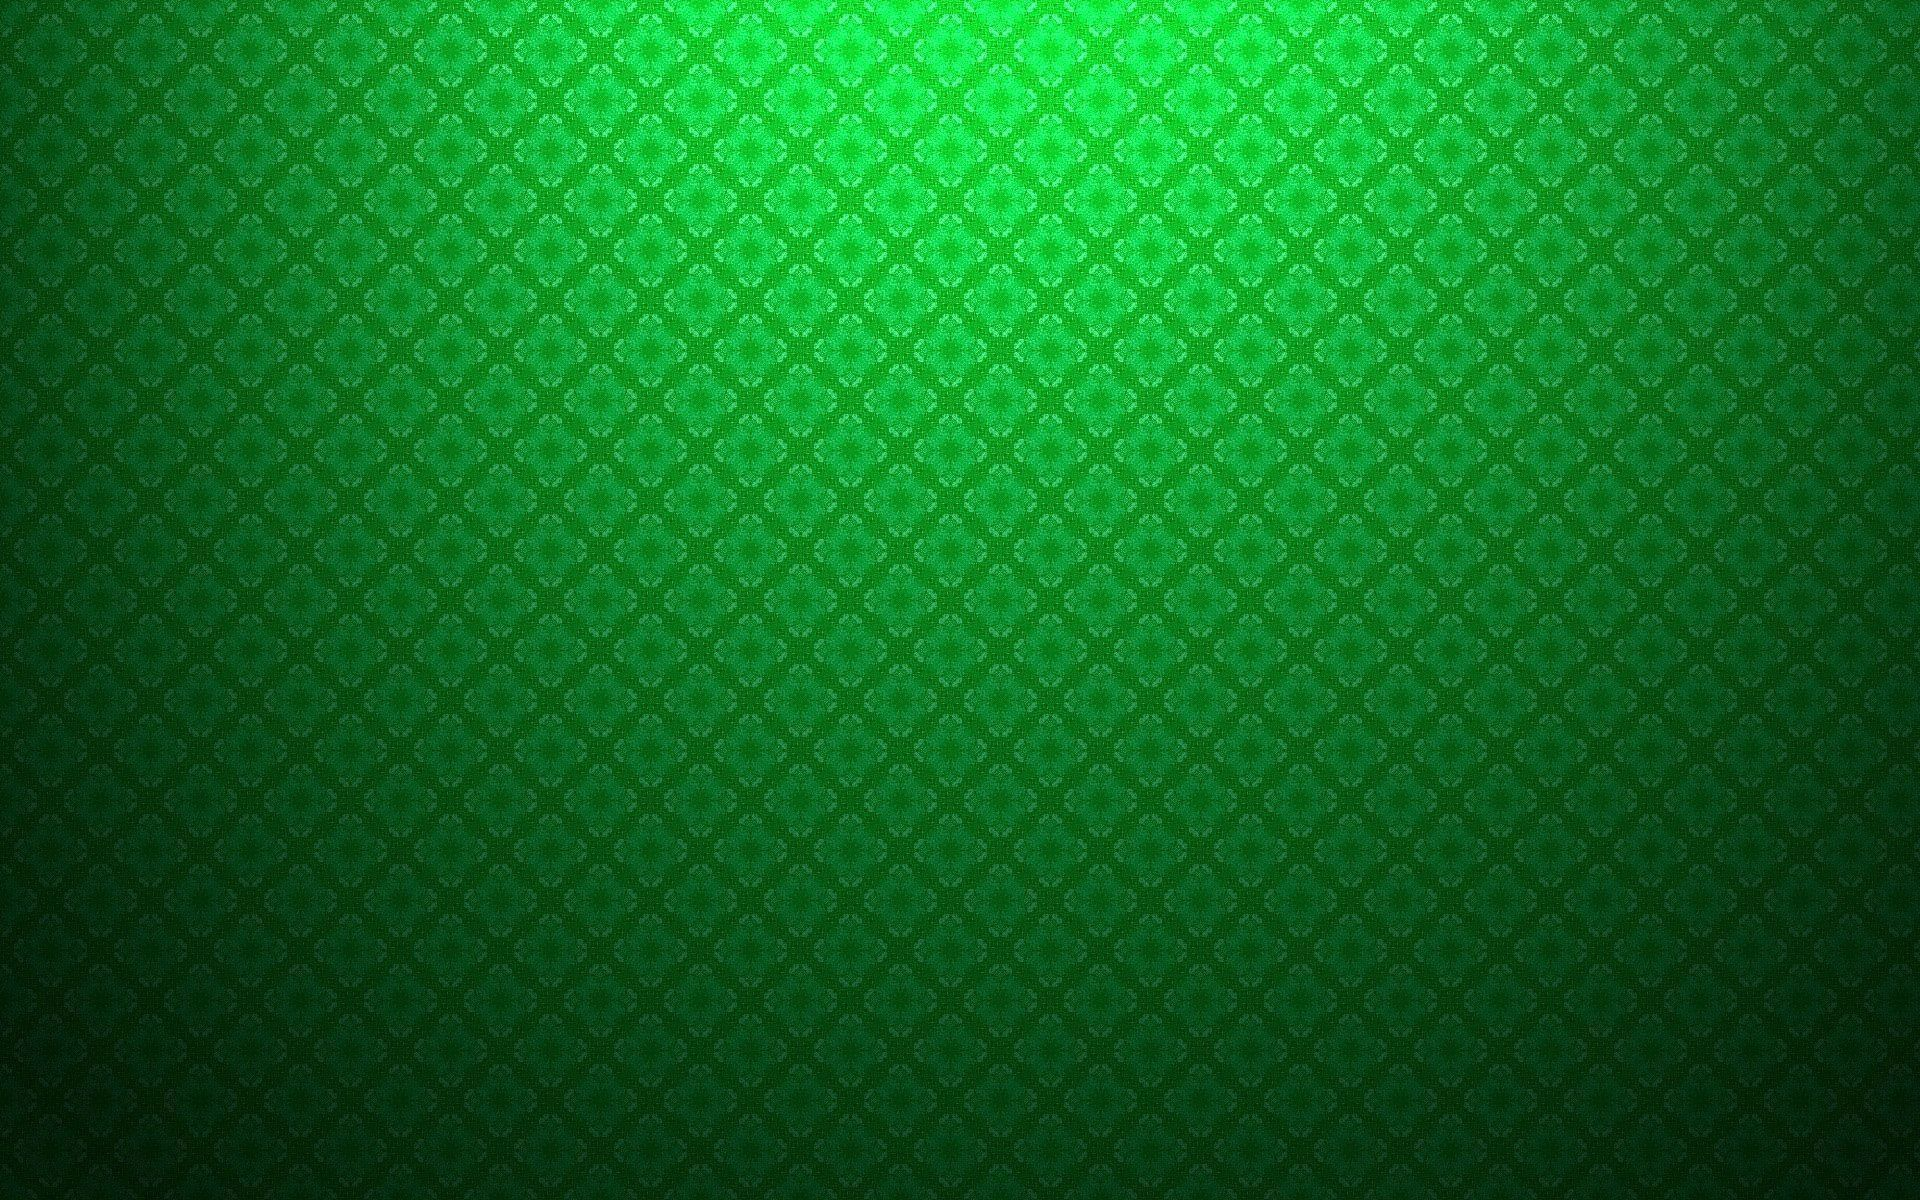 Green backgrounds hd